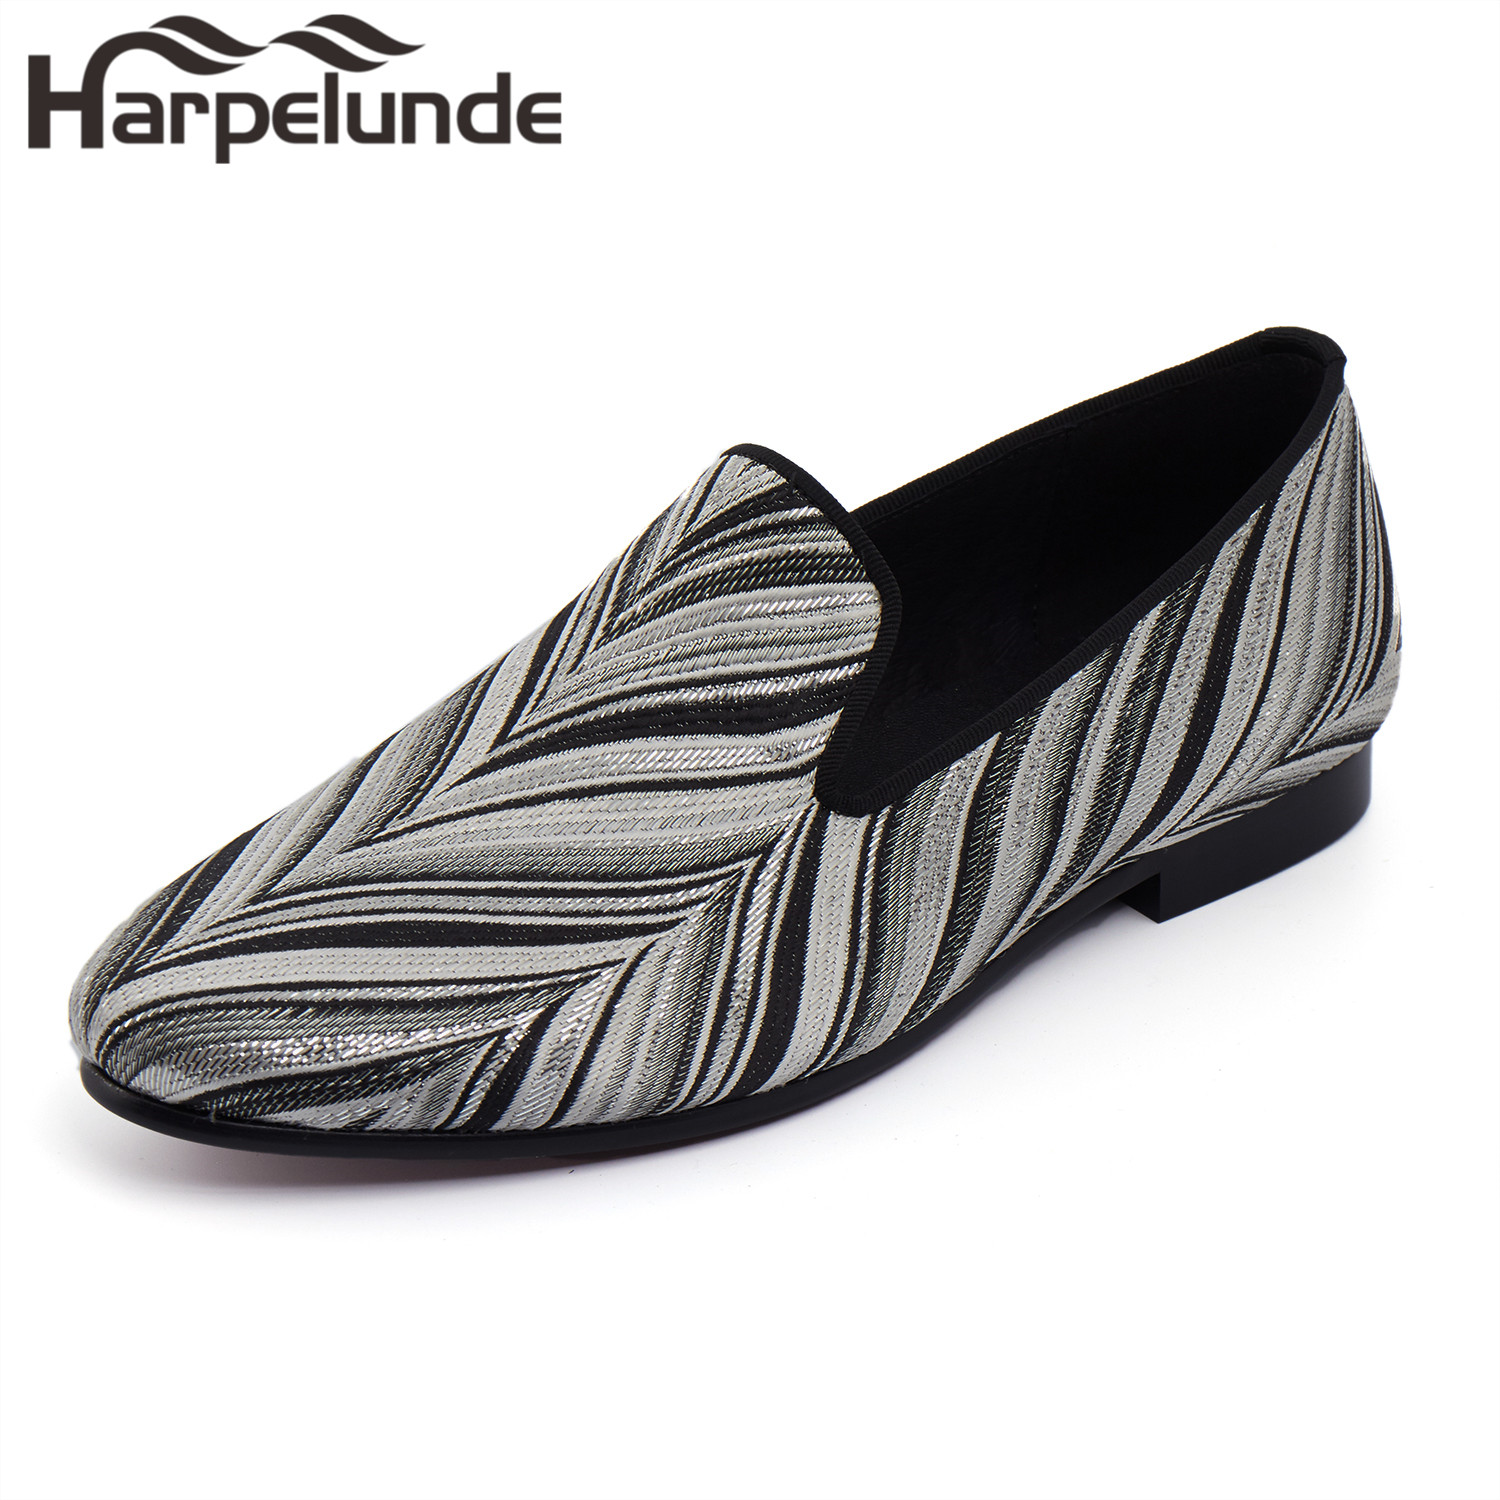 Harpelunde New Arrival Men Dress Shoes Slip On Handmade Loafers Size 6 To 14